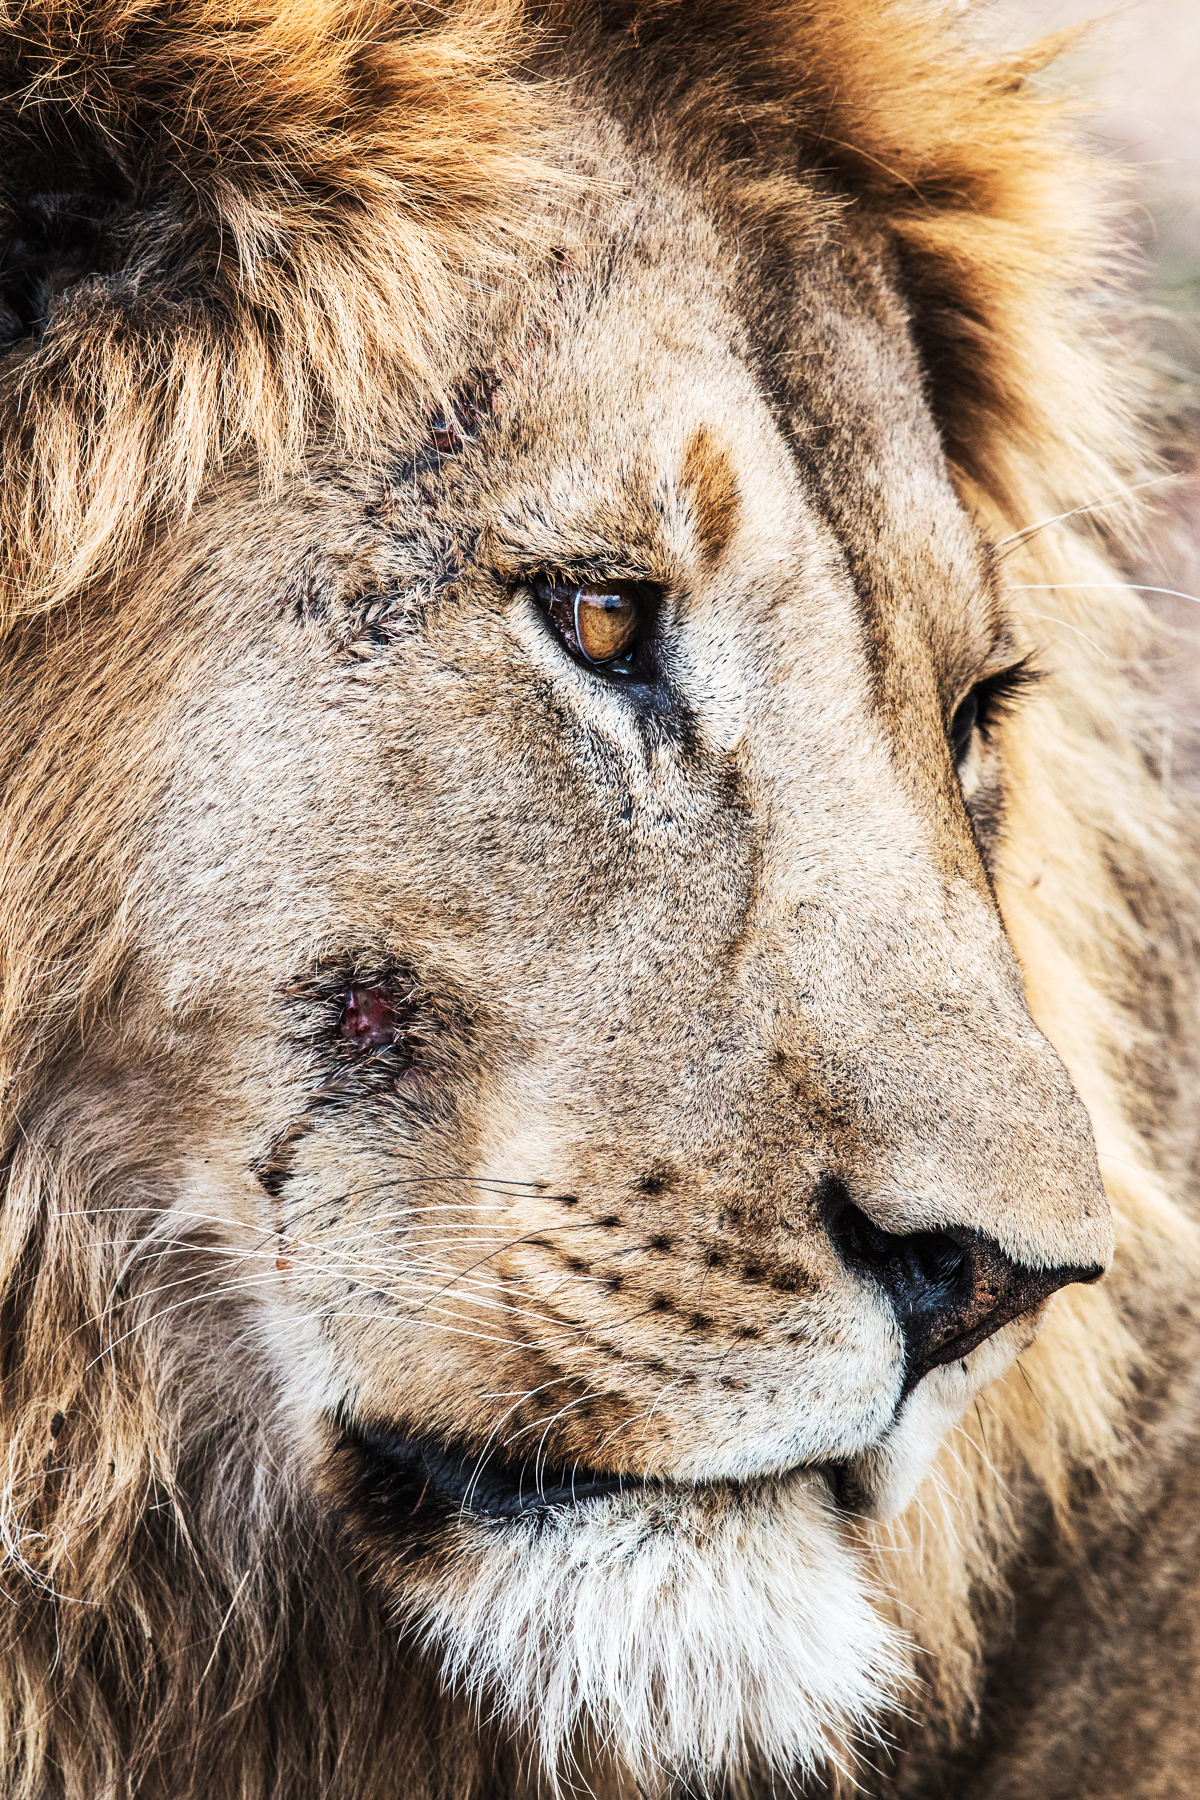 I shot this in South Africa, hi name is Pretty Boy.